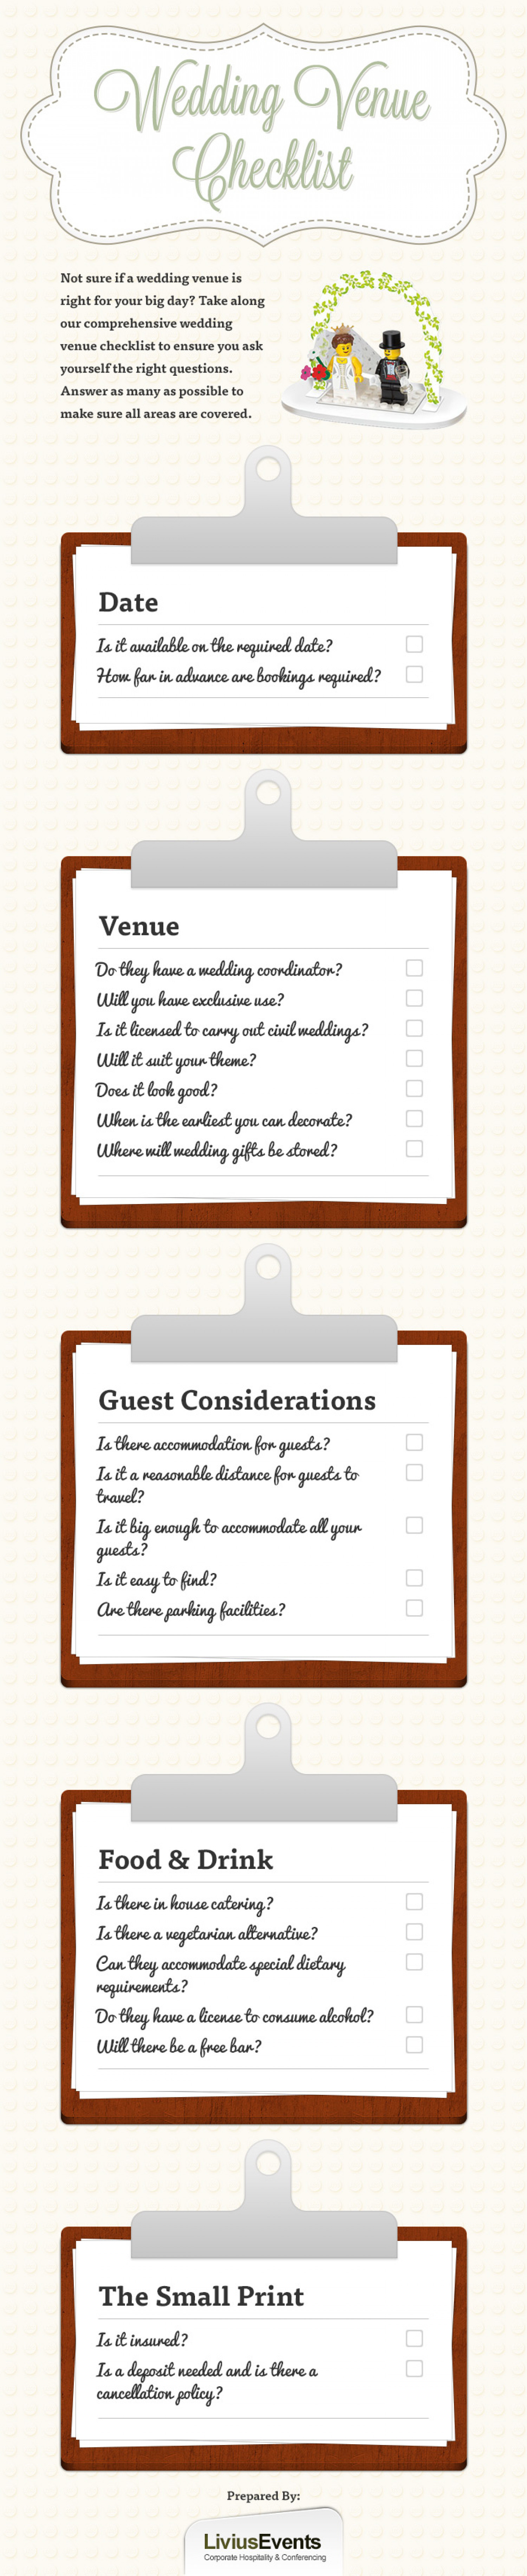 Wedding Venue Checklist Infographic